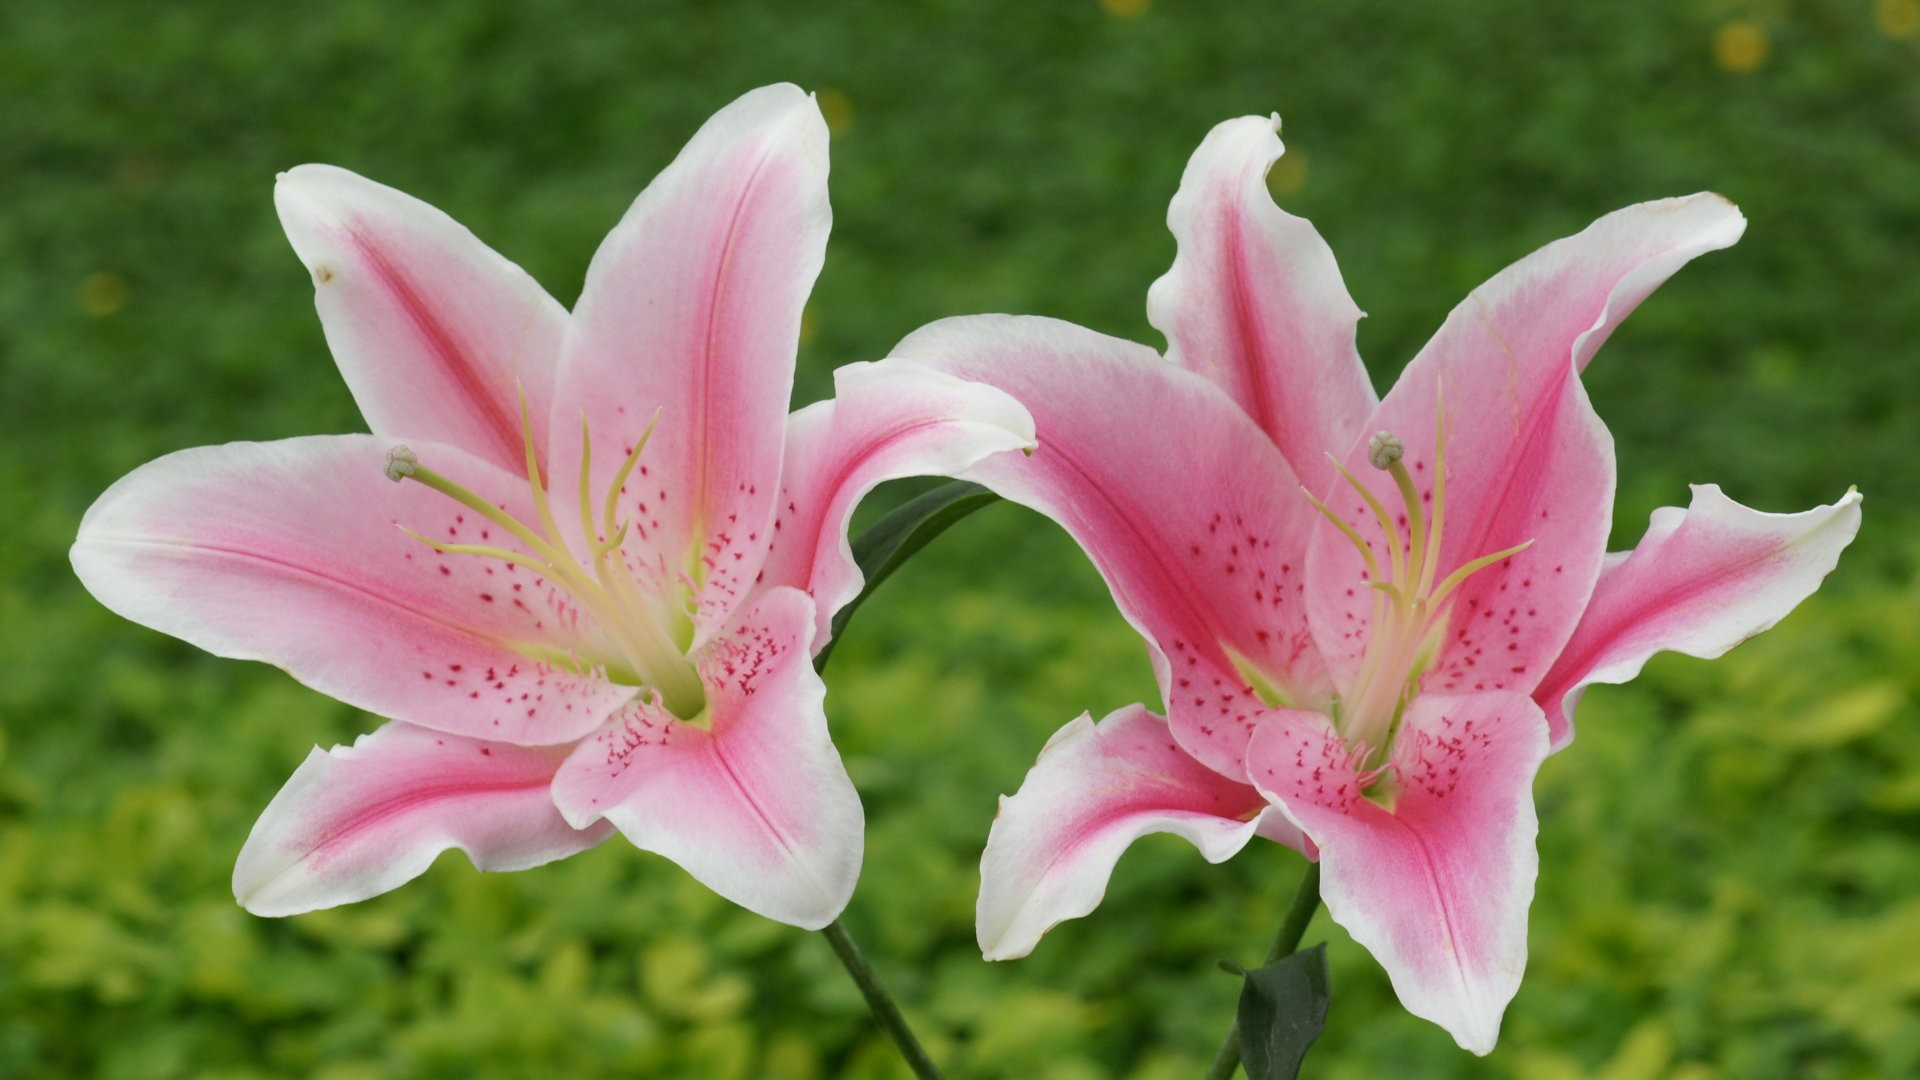 lily flowers, Beautiful flower